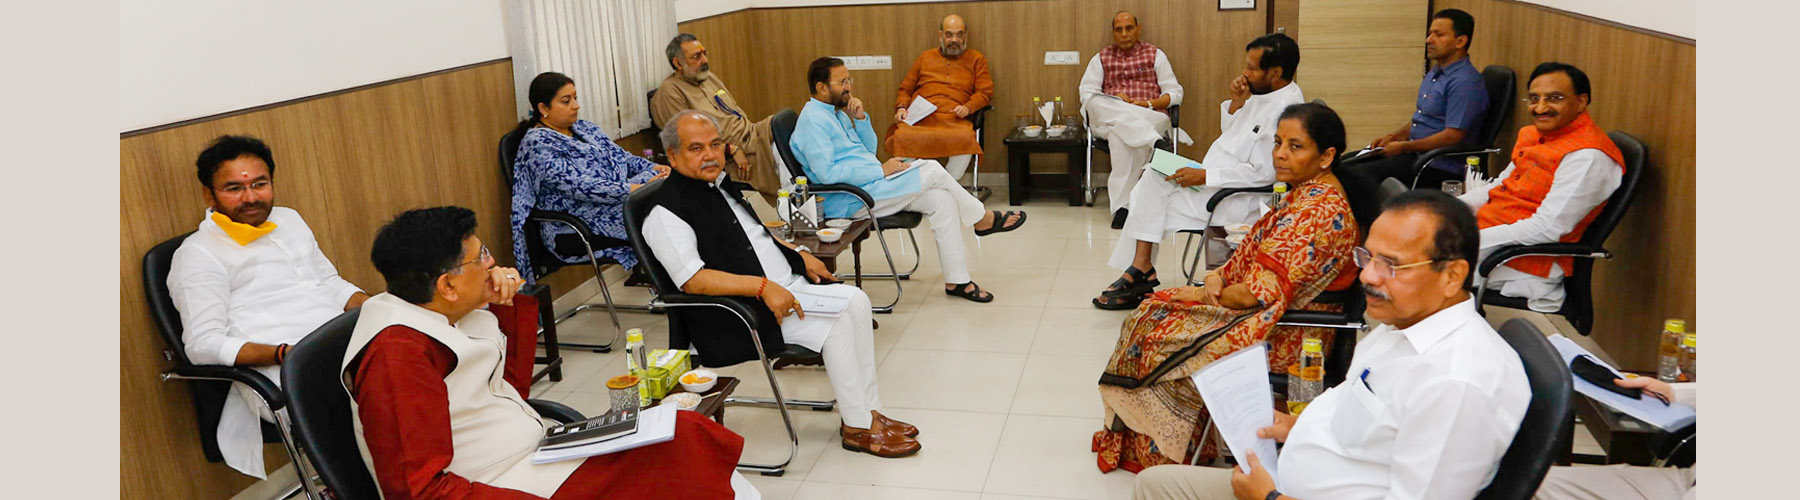 Raksha Mantri Shri Rajnath Singh chairing meeting of Group of Ministers to review measures related to COVID-19 situation, in New Delhi on Tuesday, April 7, 2020.